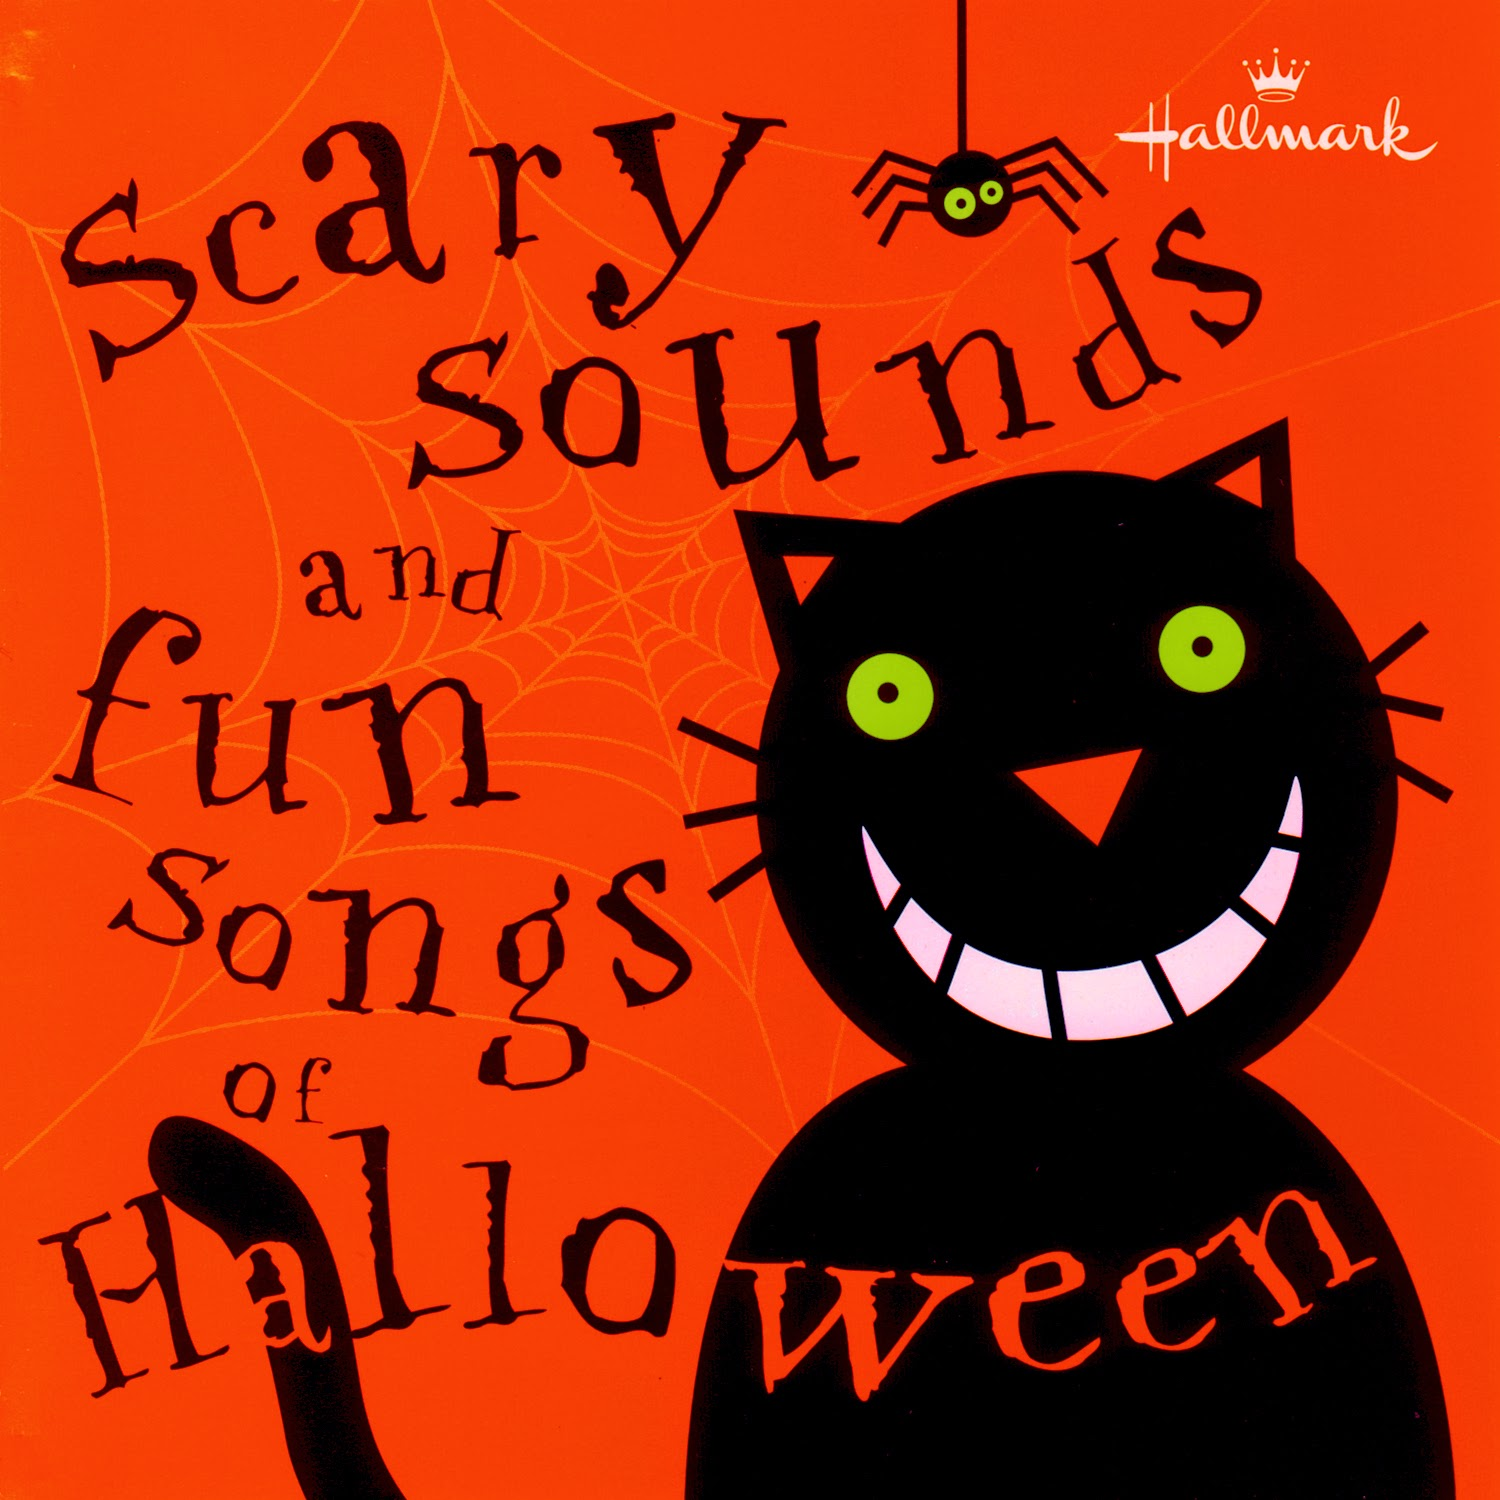 Scary Sounds of Halloween Blog: Hallmark - Scary Sounds and Fun ...